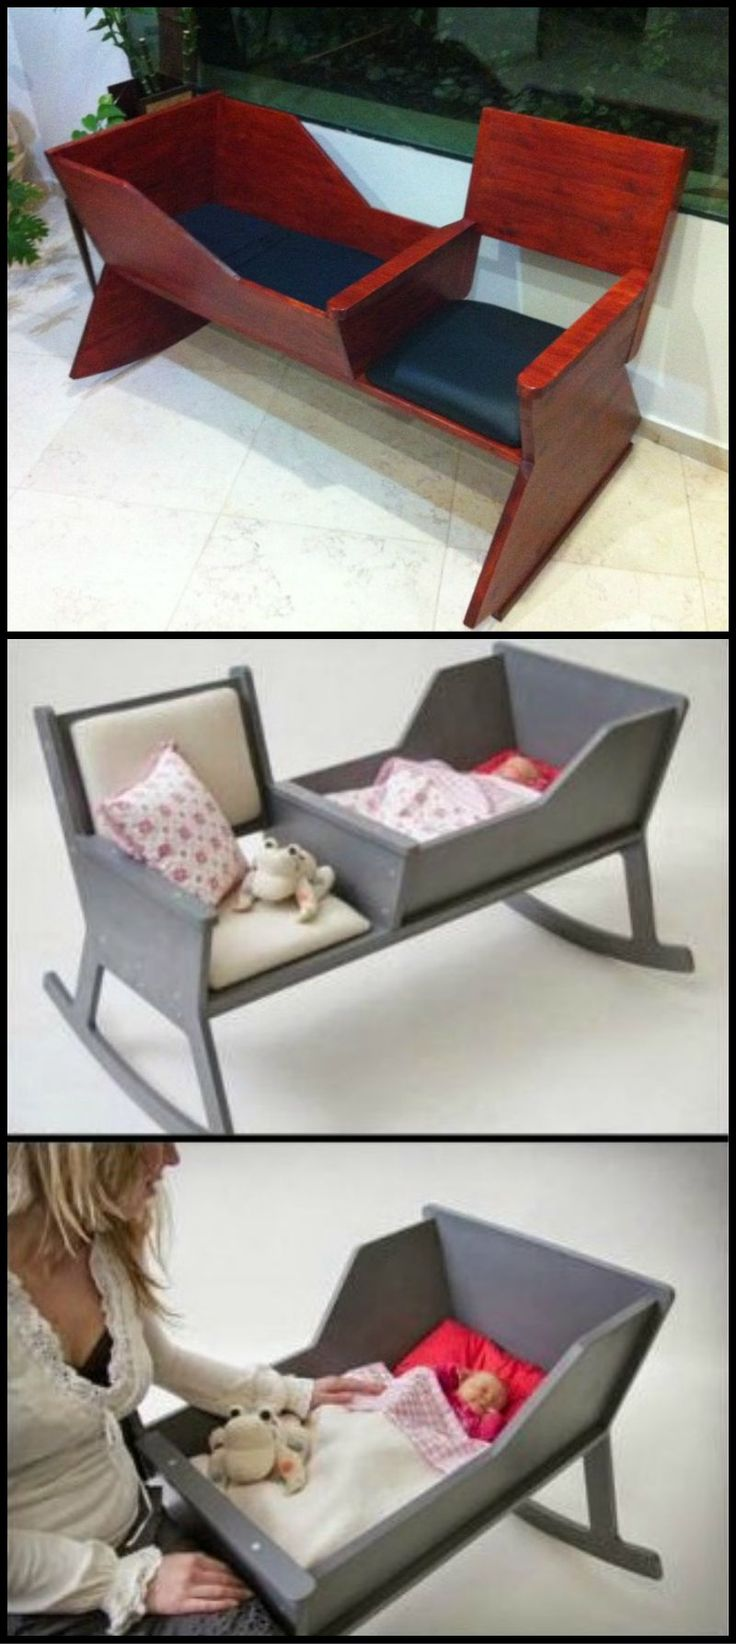 Incorporate The Ikea Poang Chair In Your Dcor And DIY Projects